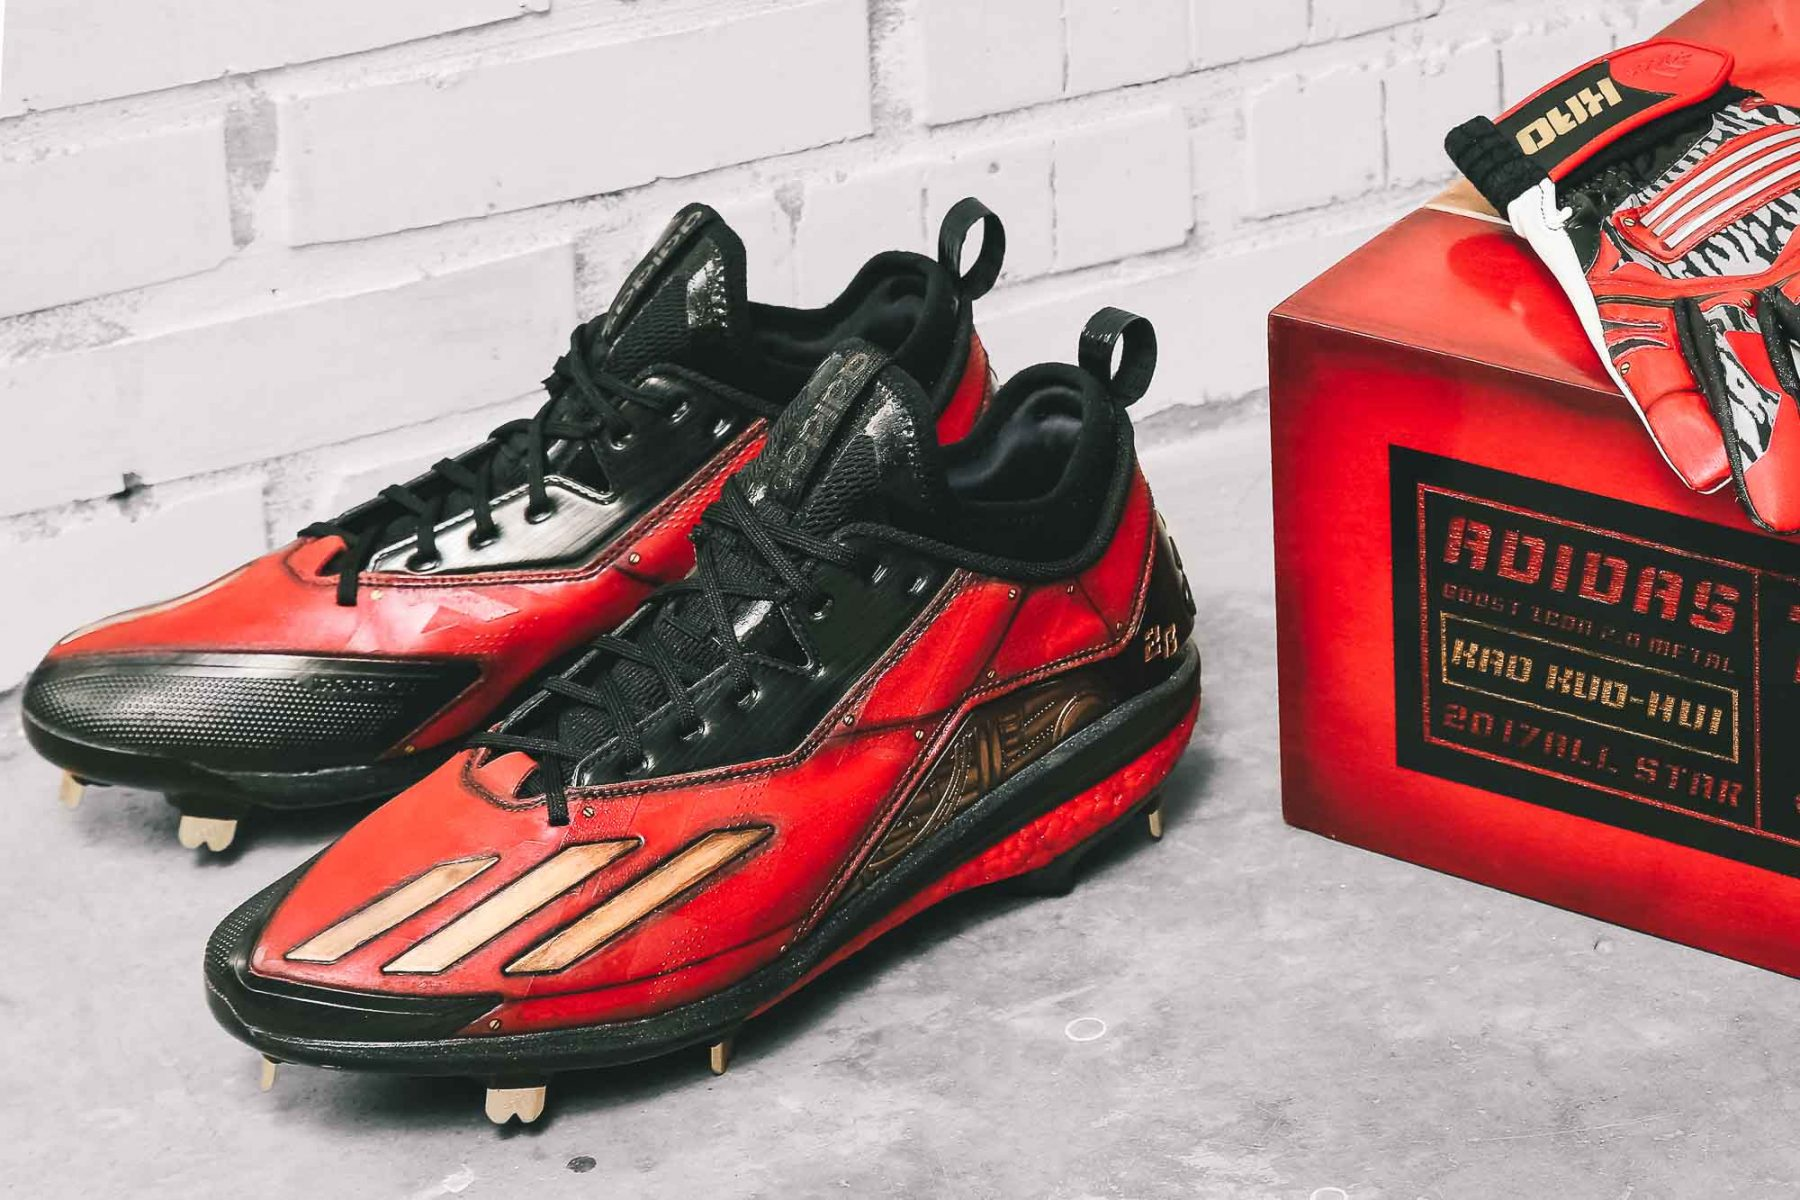 adidas-cpbl allstar custom cleat-10